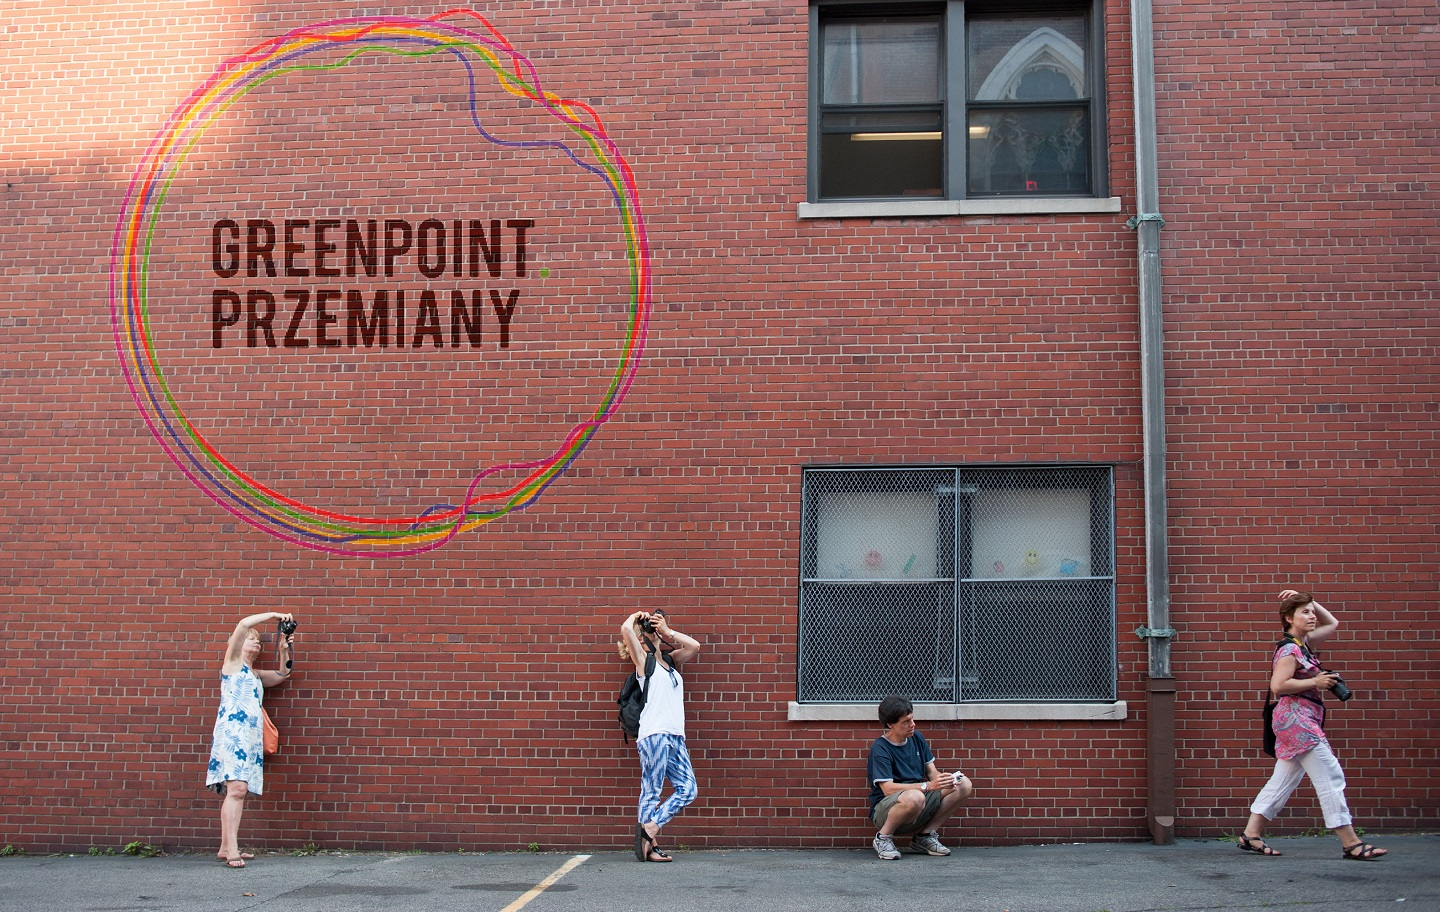 """Greenpoint. The Transition"" comes back in 2015!"